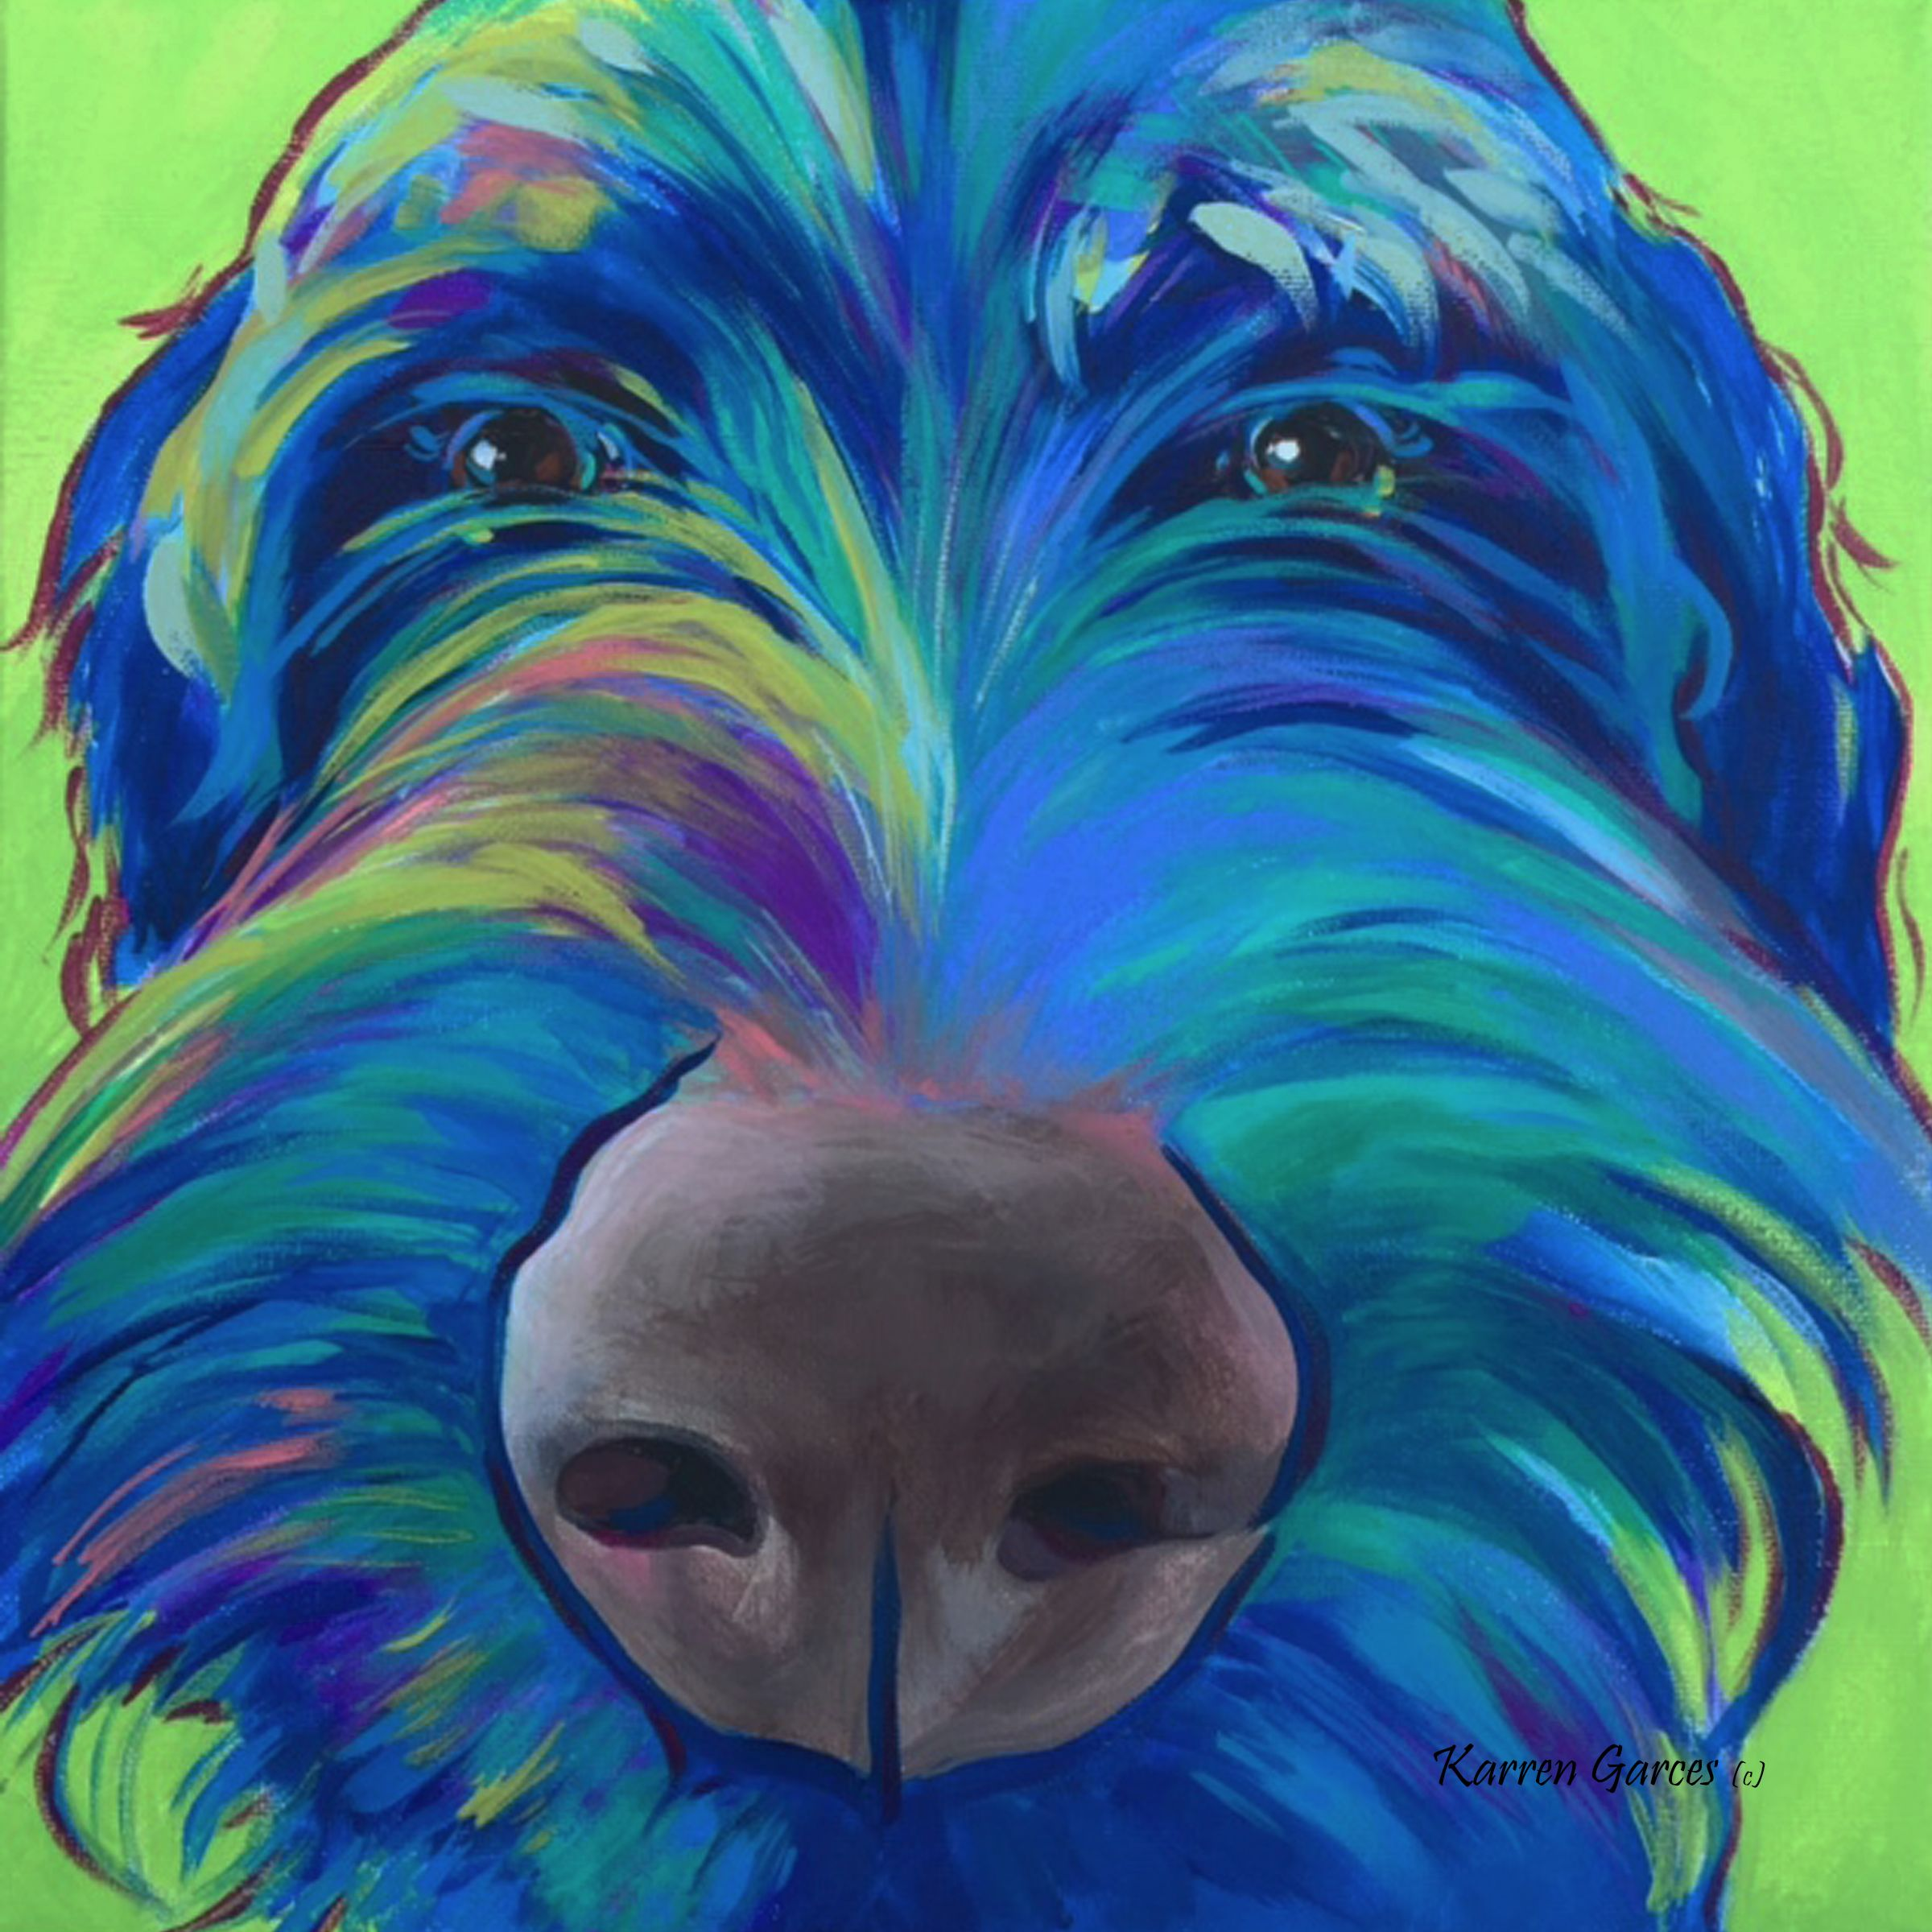 Acrylic On Canvas Pop Art Painting Of A Labradoodle Or Wireheared Griffon Colorful Dog Art Pop Art Animals Dog Painting Pop Art Dog Pop Art